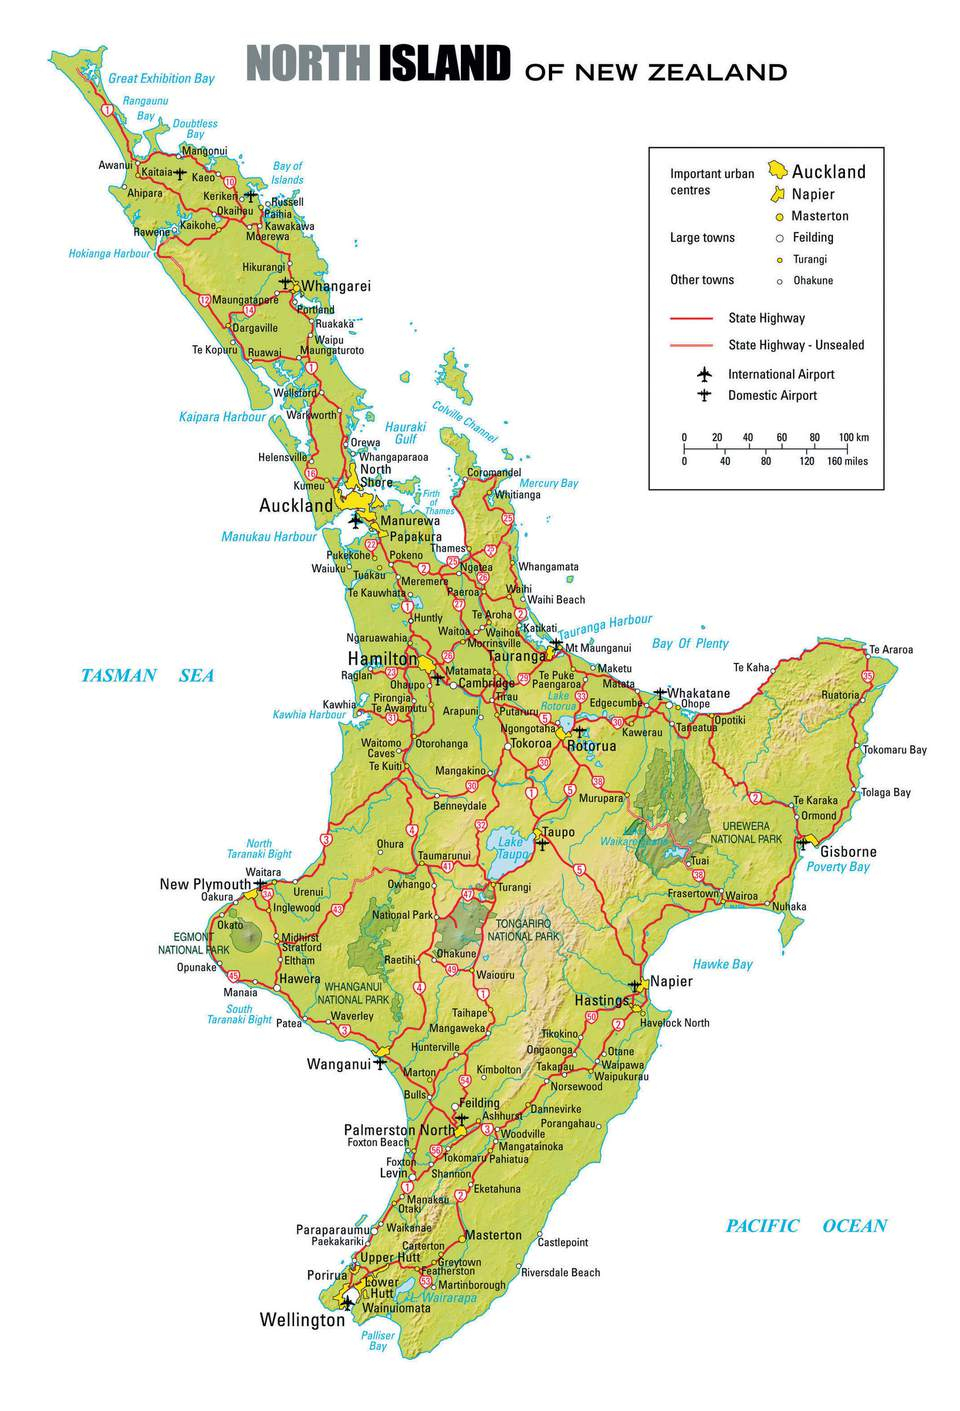 Take A Road Trip On New Zealand's North Island - New Zealand North Island Map Printable